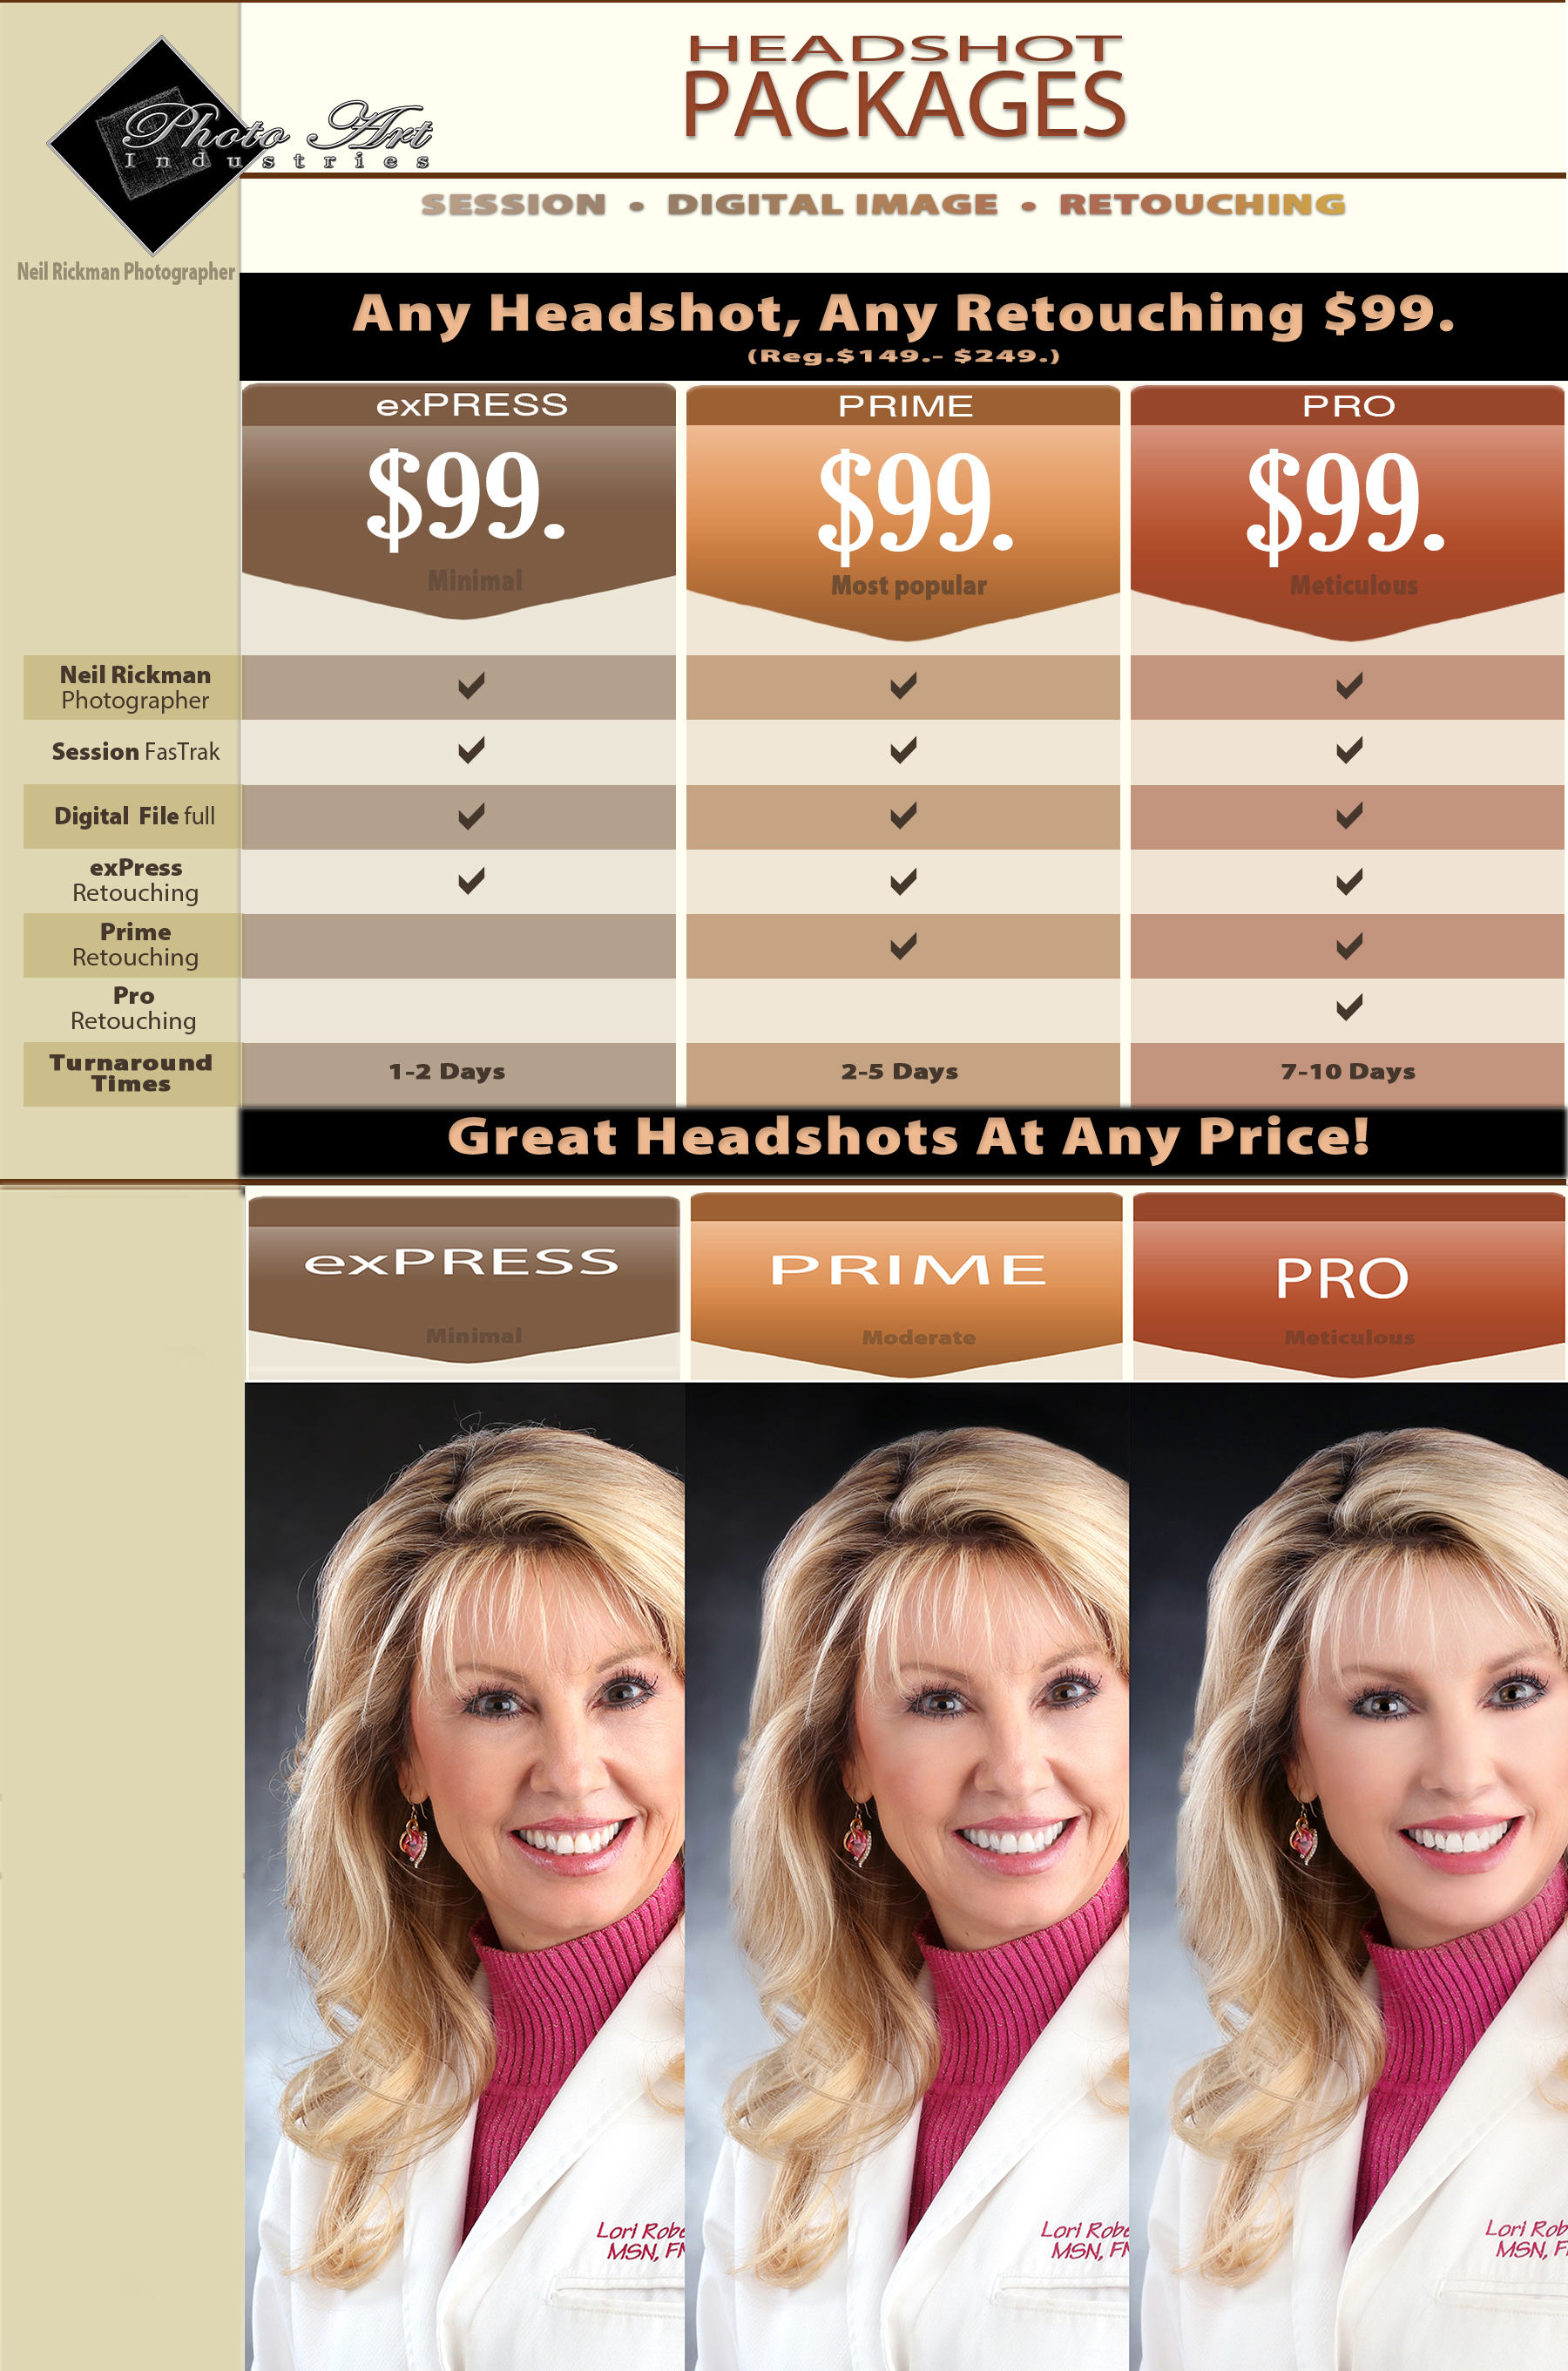 Headshot Pricing & Packages